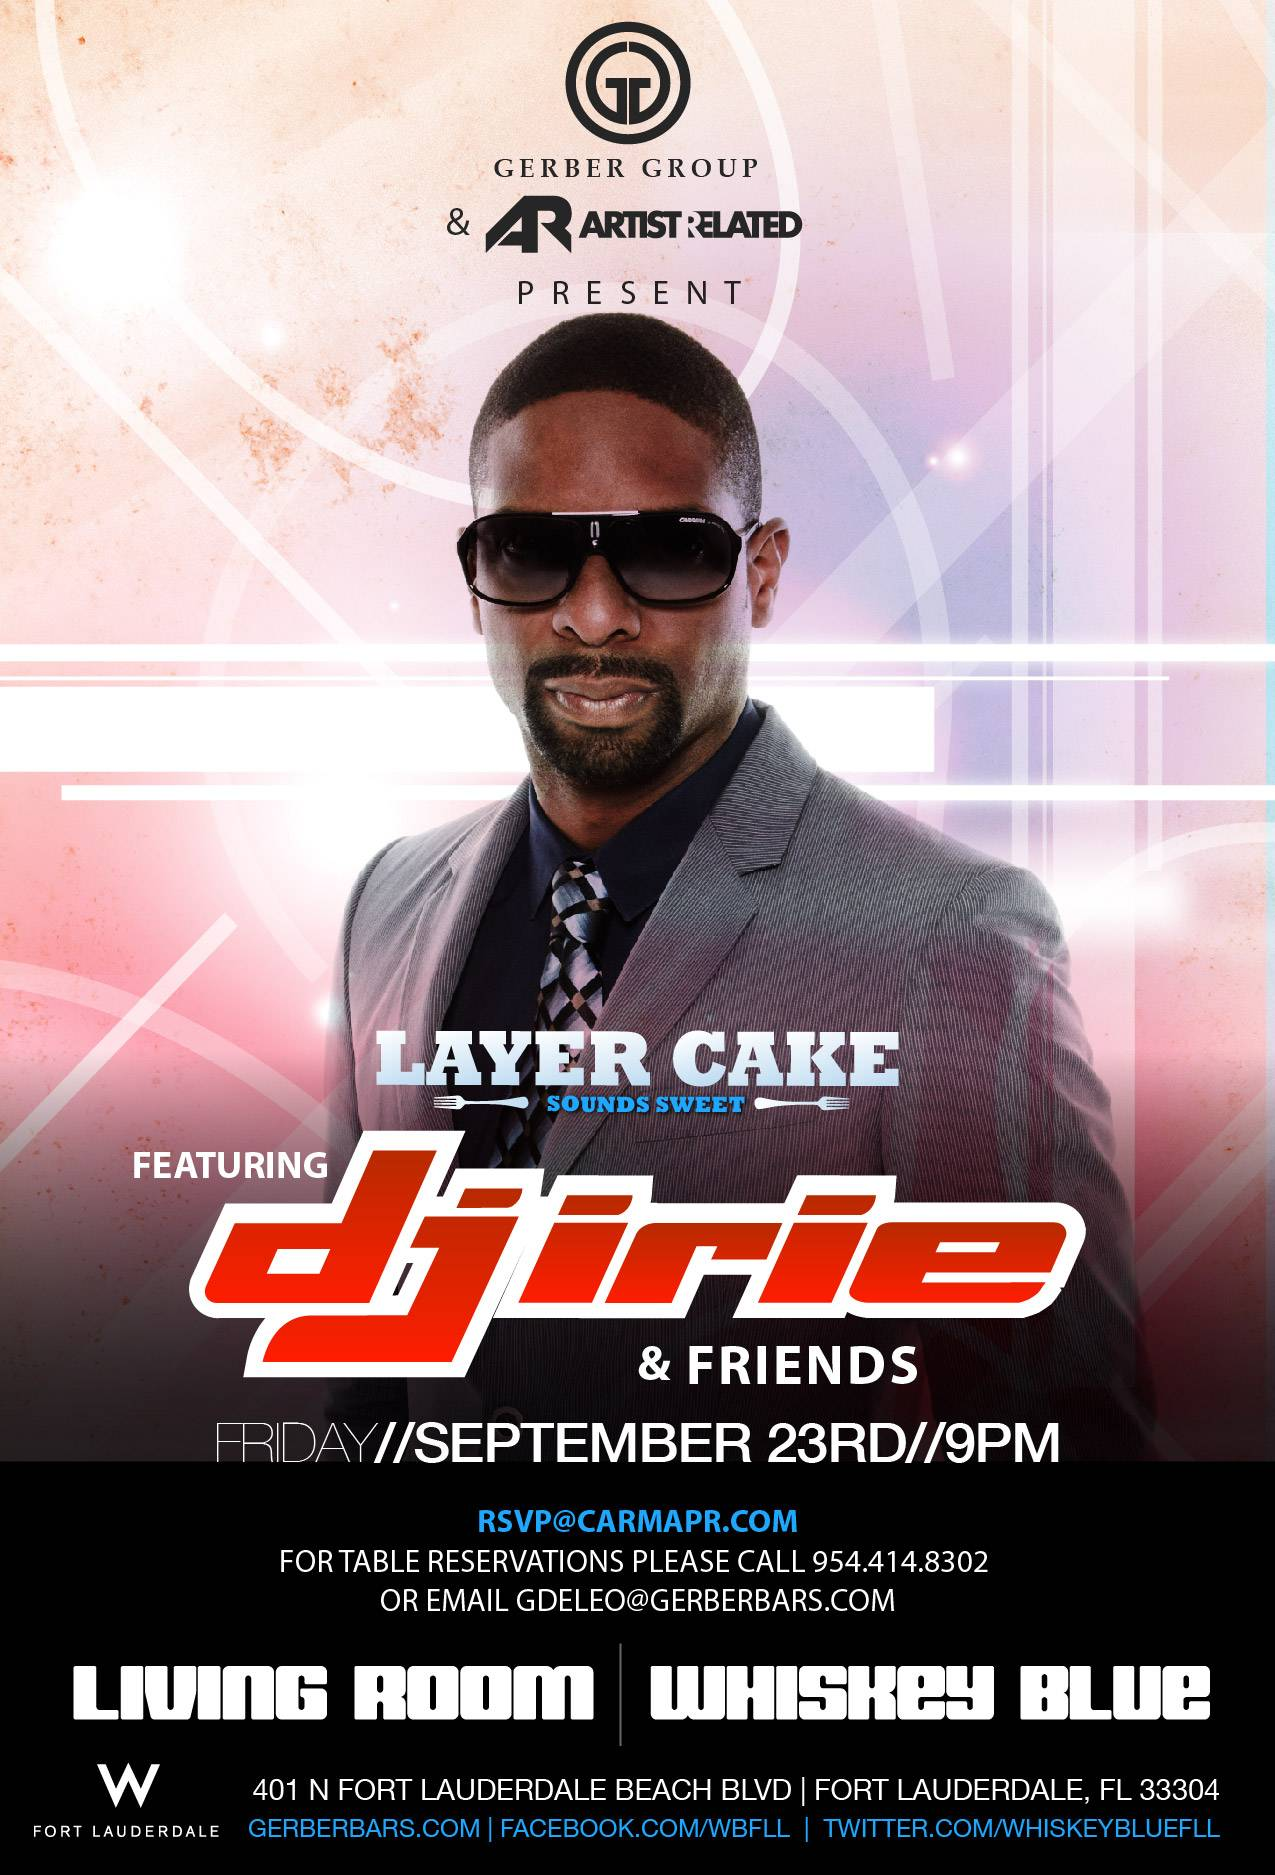 Renowned music series Layer Cake returns this Friday, September 23 at Living Room at W Fort Lauderdale